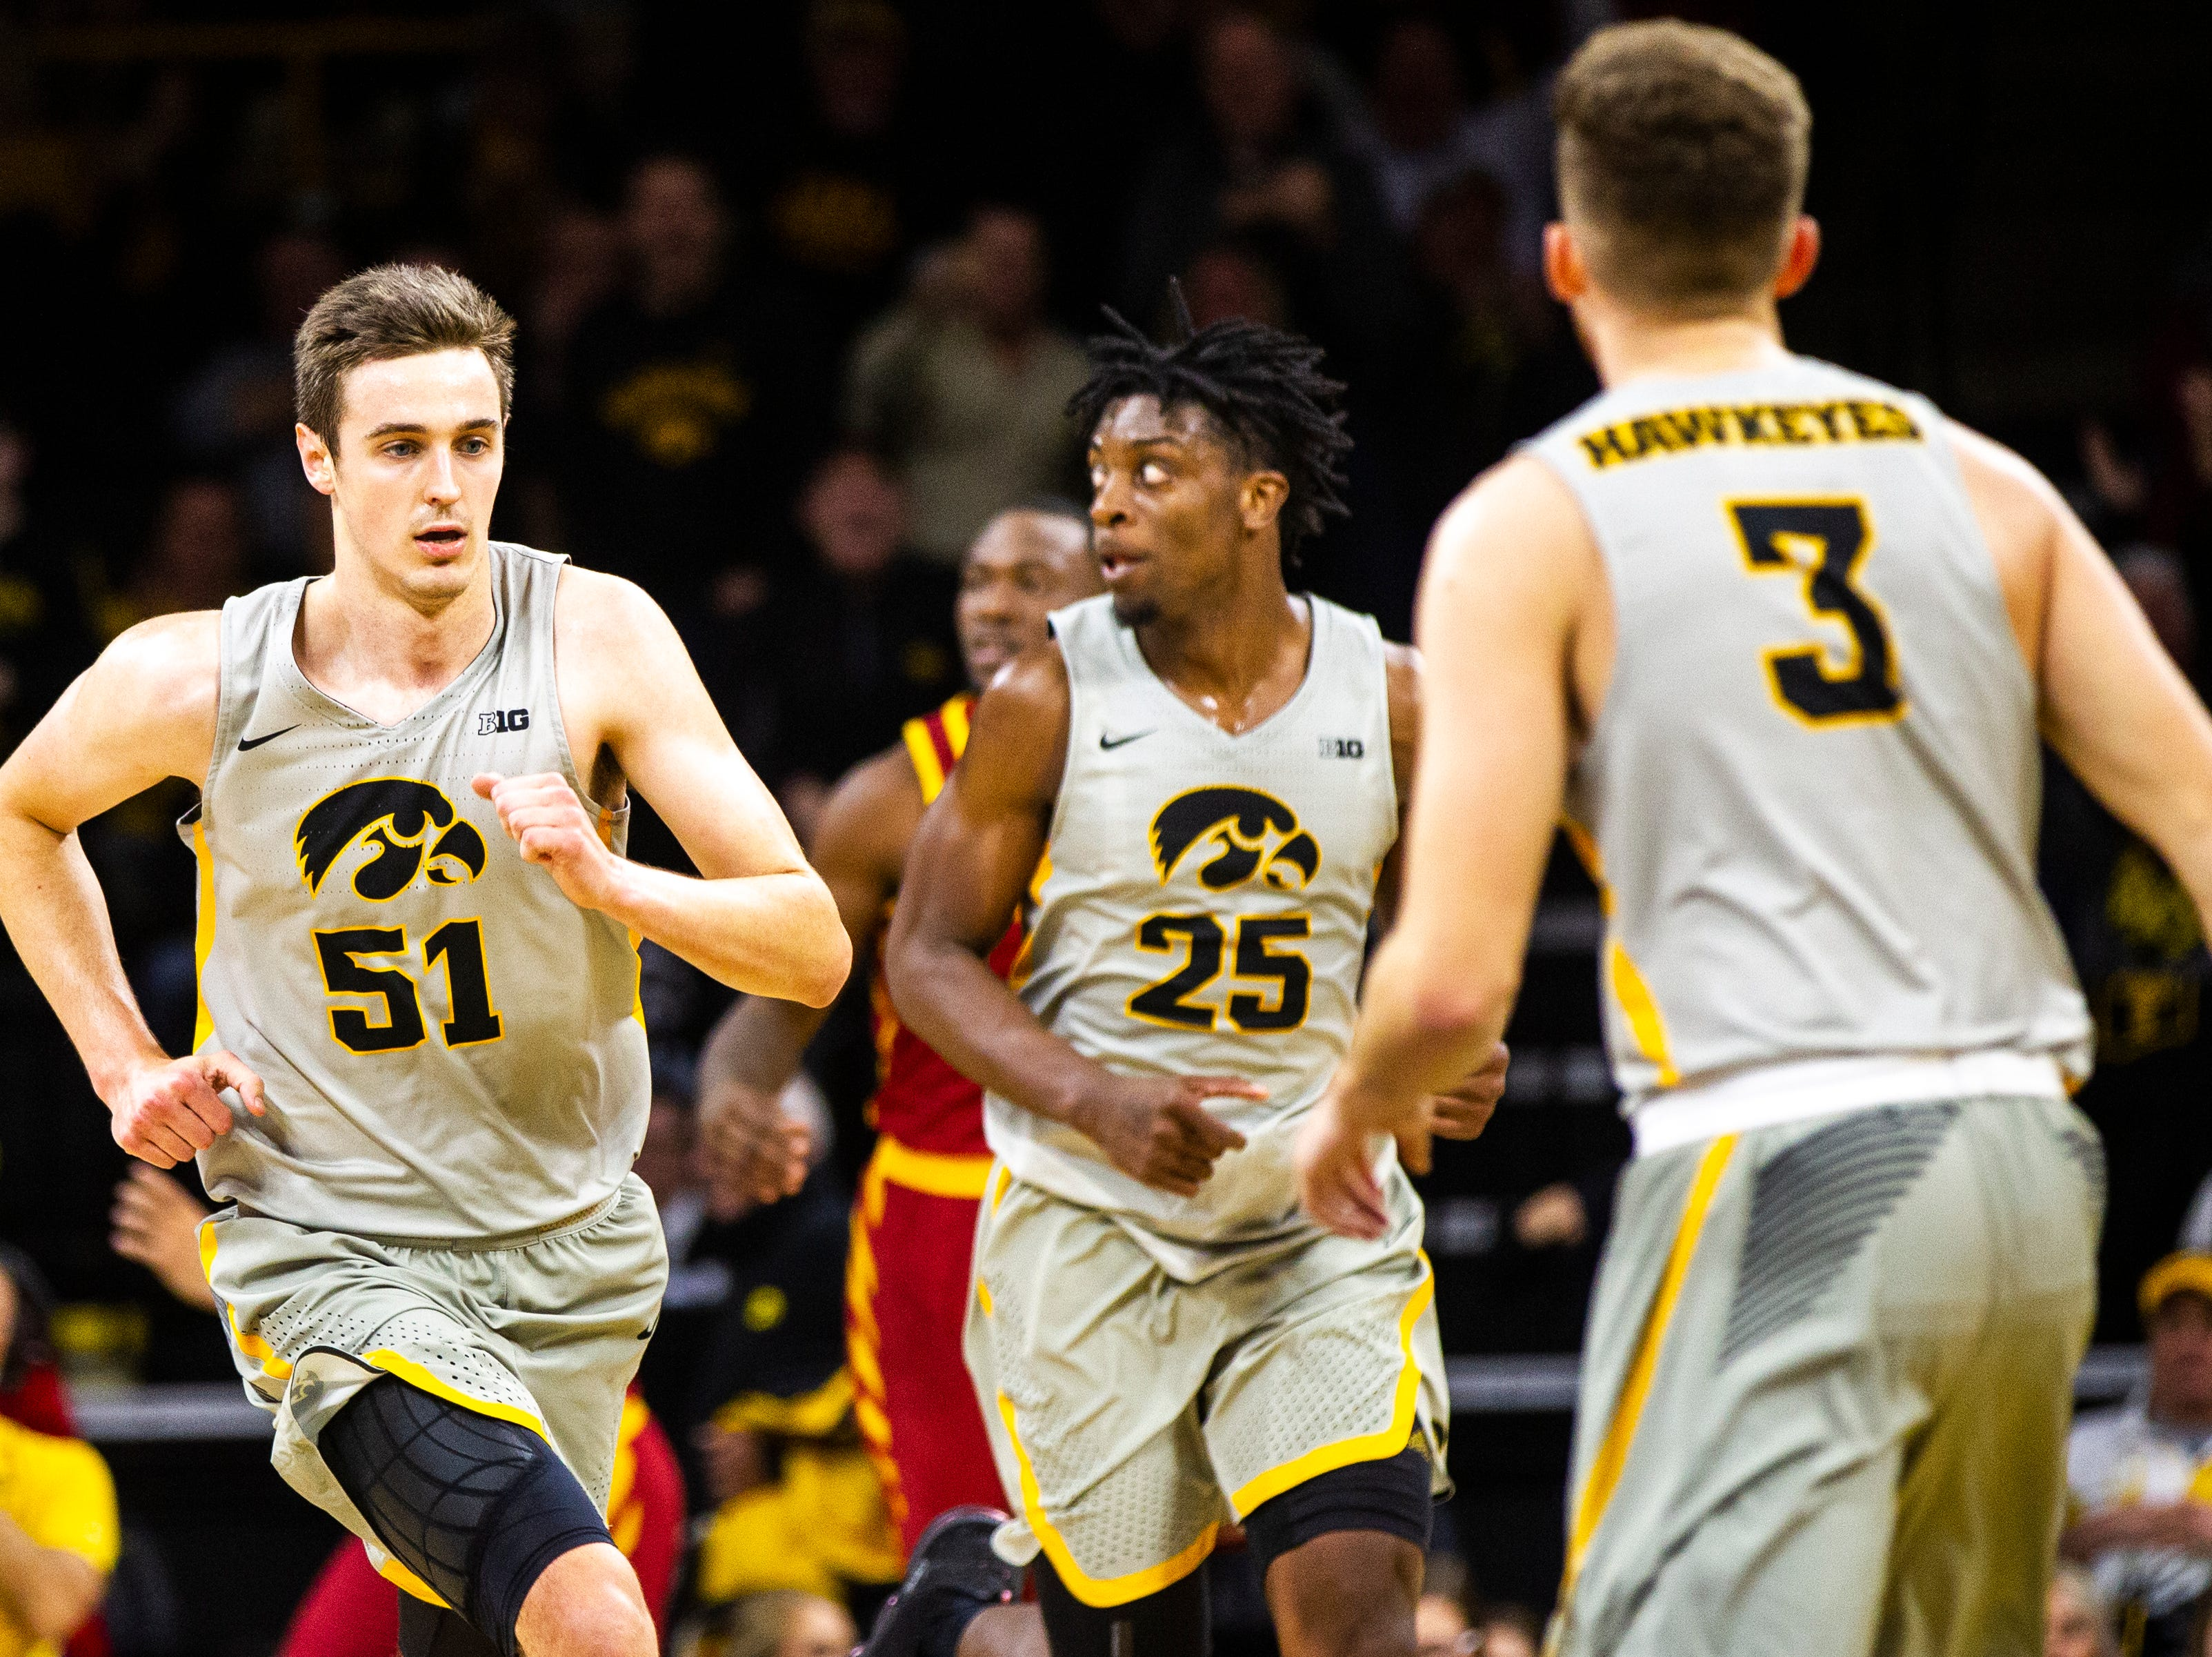 Iowa forward Nicholas Baer (51) runs up court after scoring during a NCAA Cy-Hawk series men's basketball game on Thursday, Dec. 6, 2018, at Carver-Hawkeye Arena in Iowa City.